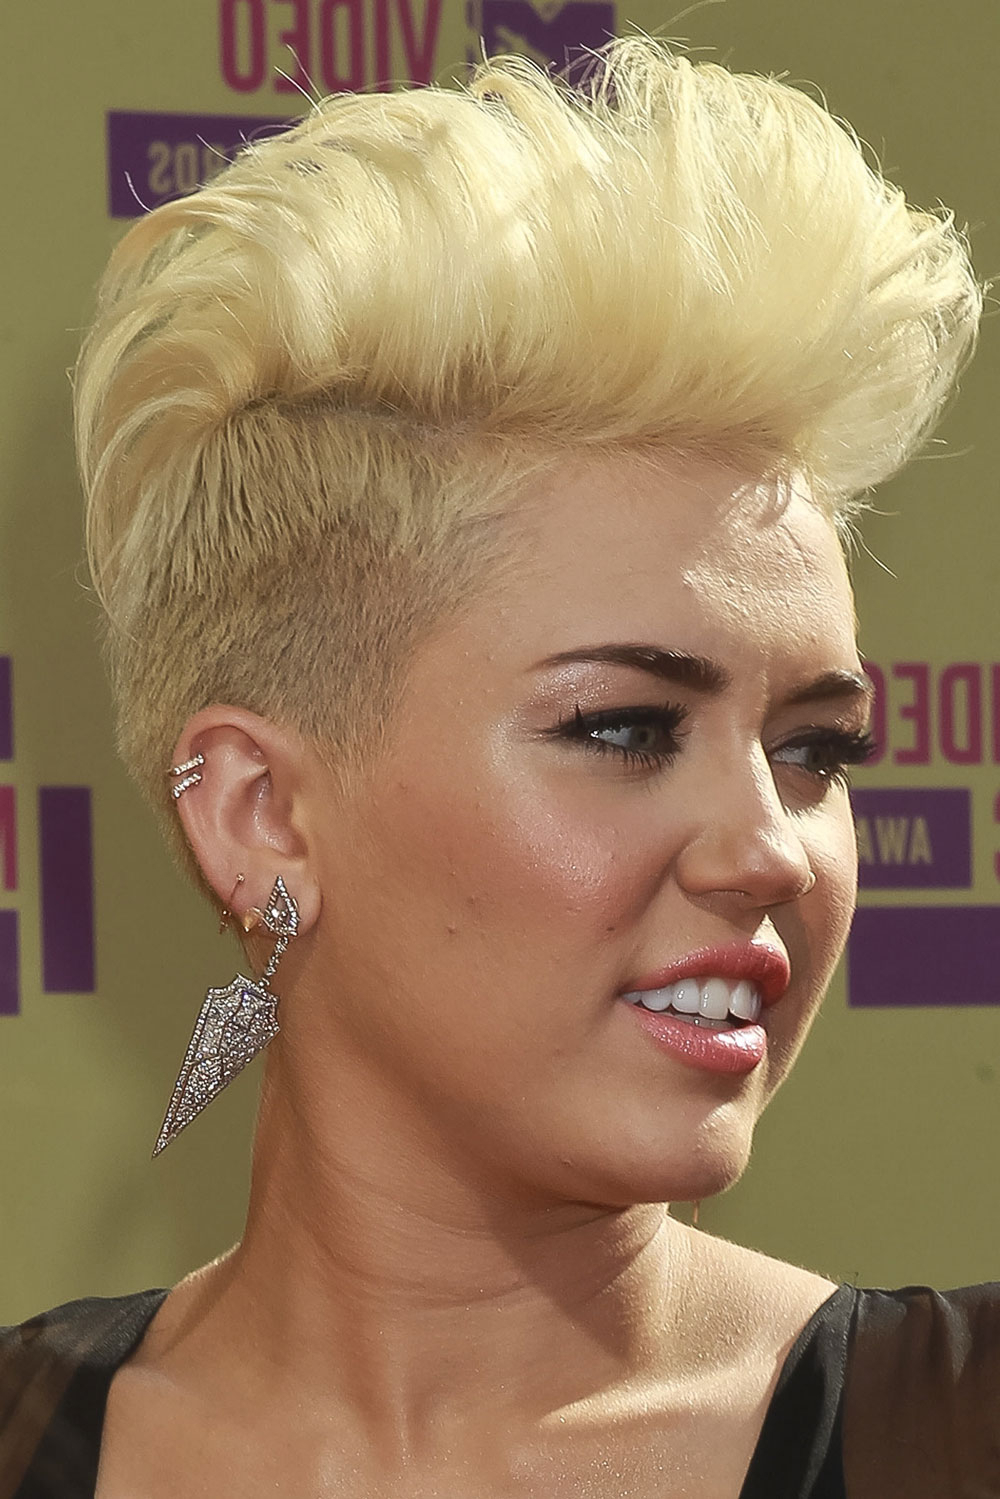 Most Recently Released Bleached Mohawk Hairstyles Intended For Sleek Mohawk Hairstyle Miley Cyrus (View 10 of 20)